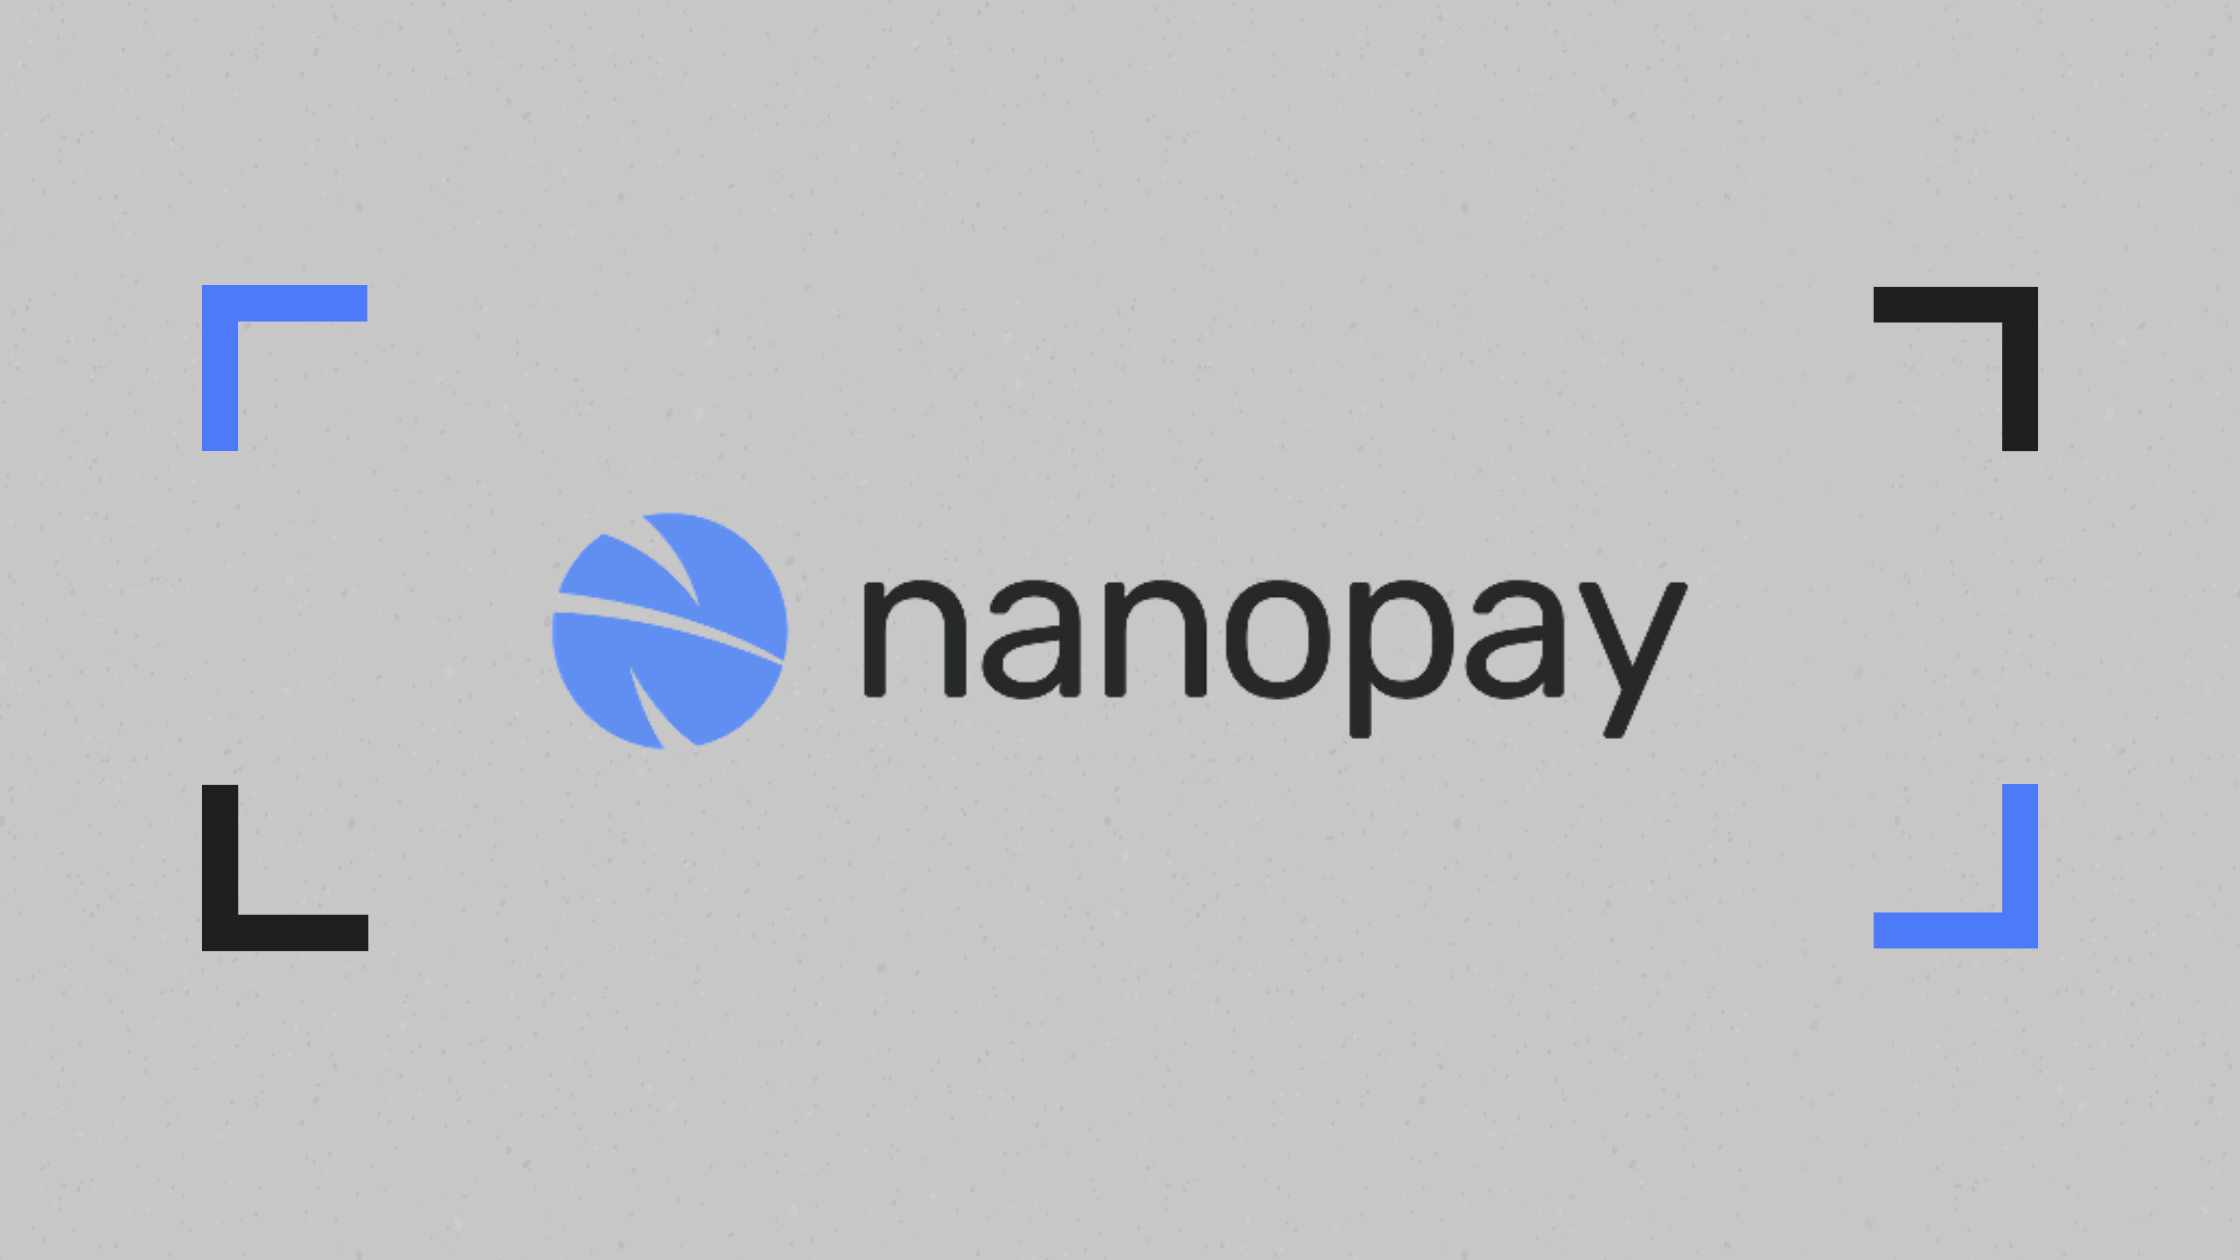 BePay & nanopay Team Up To Enable International Payments For Customers